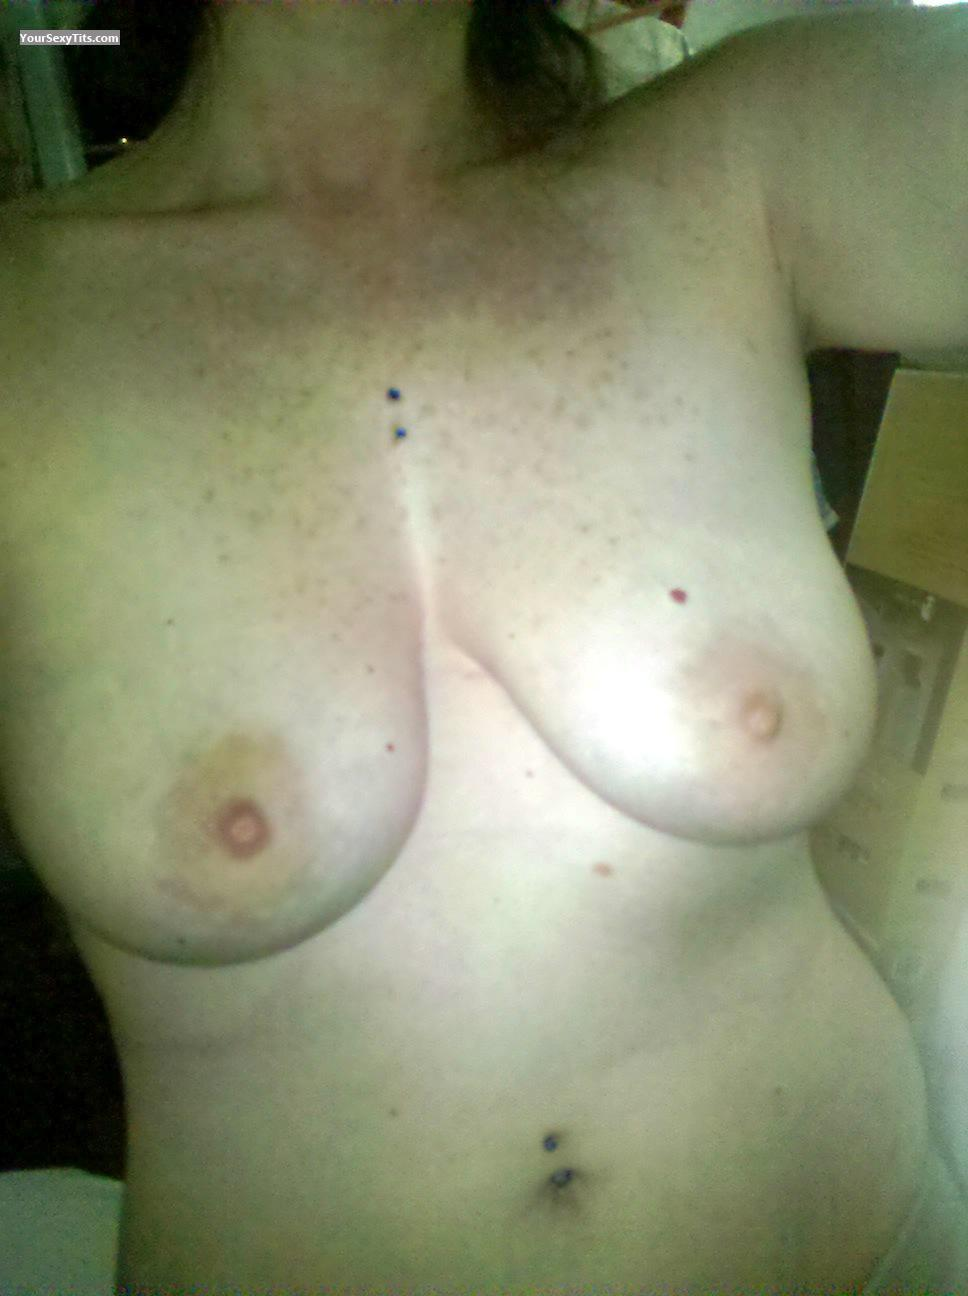 Tit Flash: Big Tits - WCB from United States